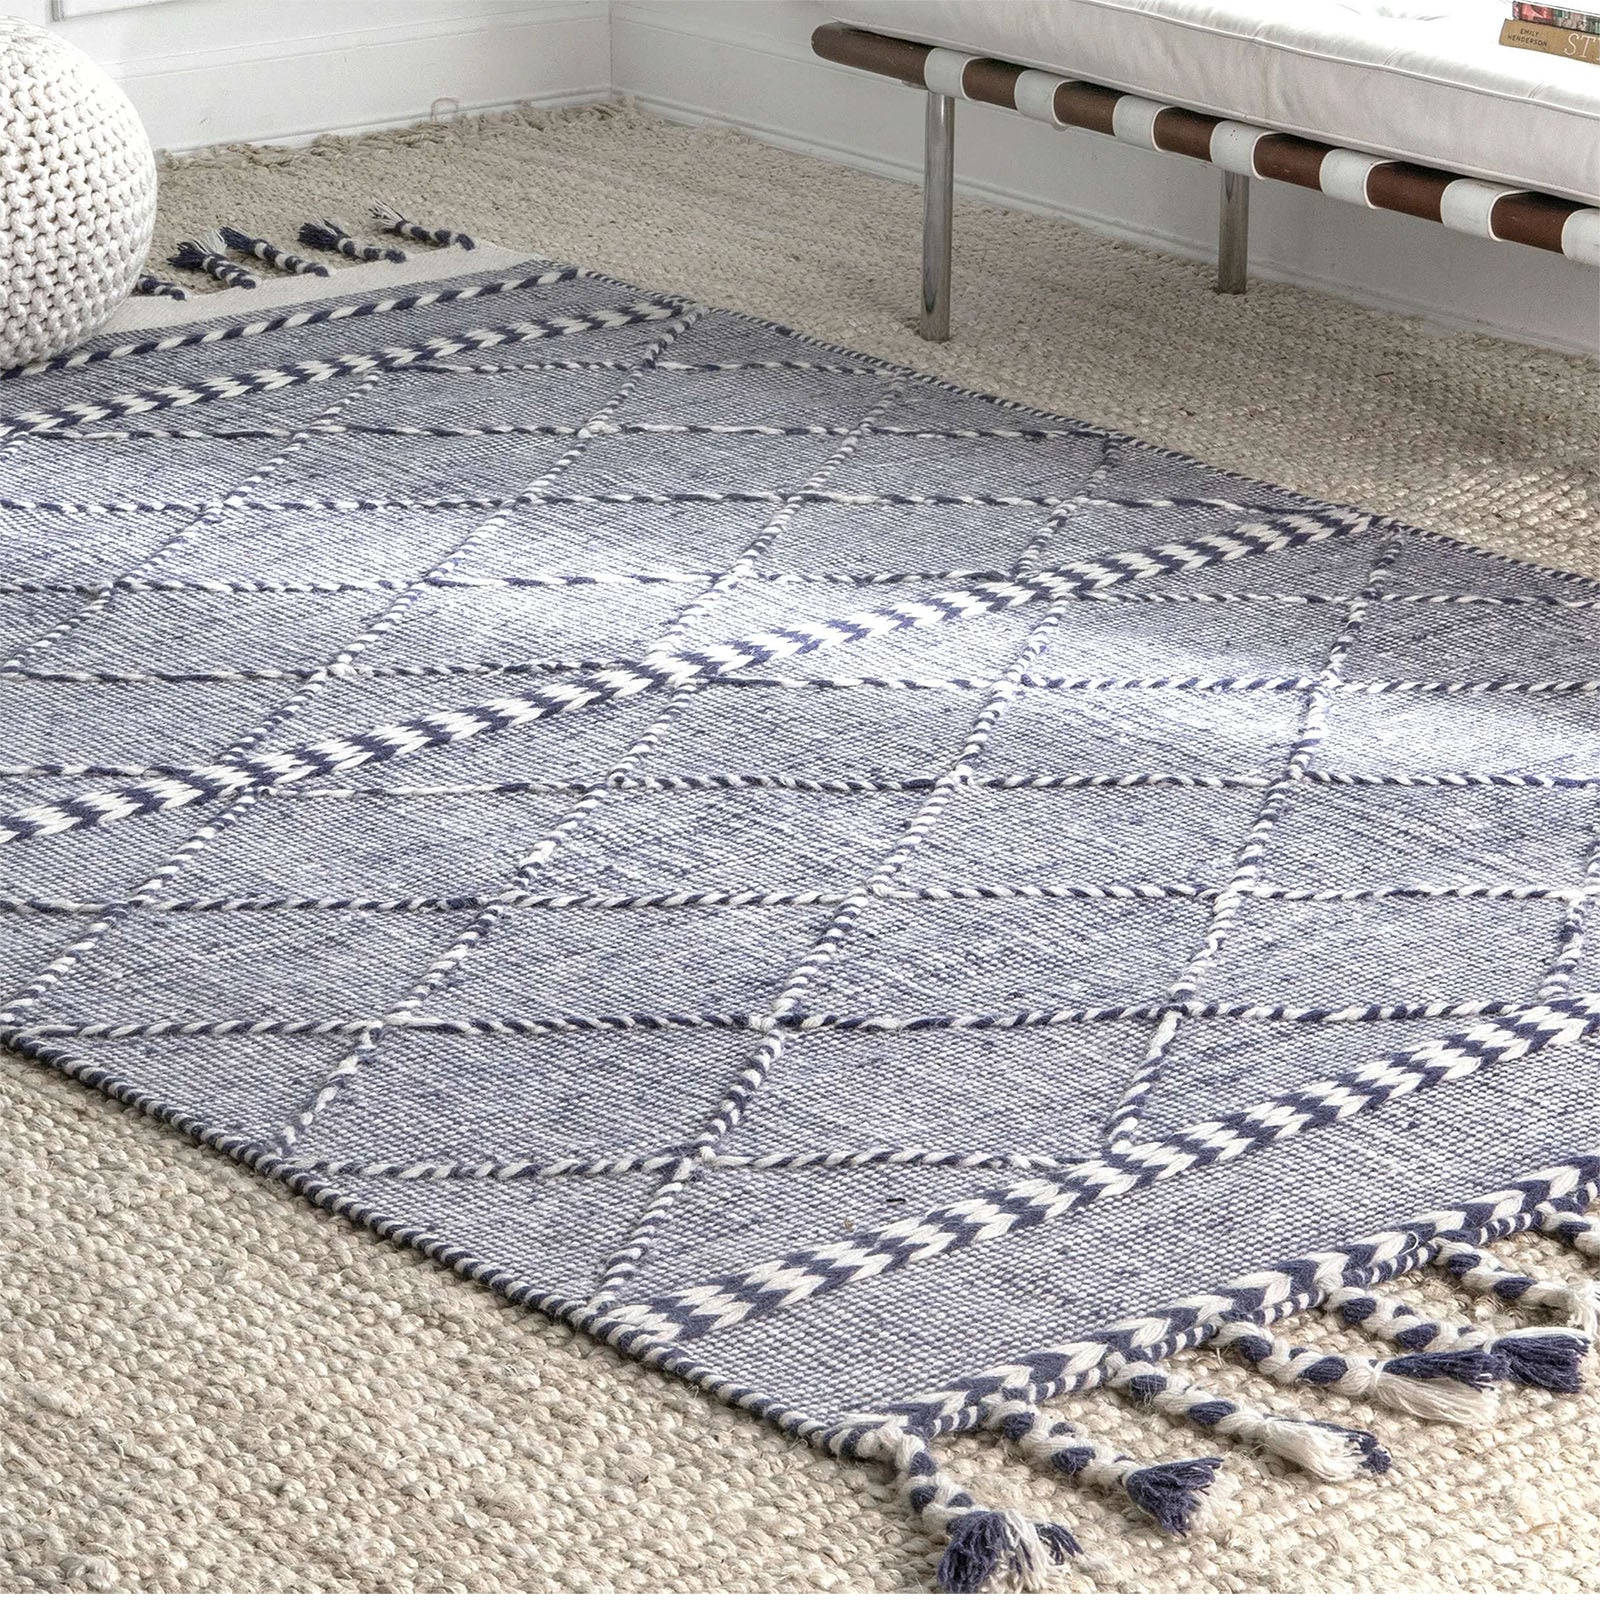 230X160  handmade rug  JH-2711-L -  230X160 سجادة يدوية الصنع - Shop Online Furniture and Home Decor Store in Dubai, UAE at ebarza